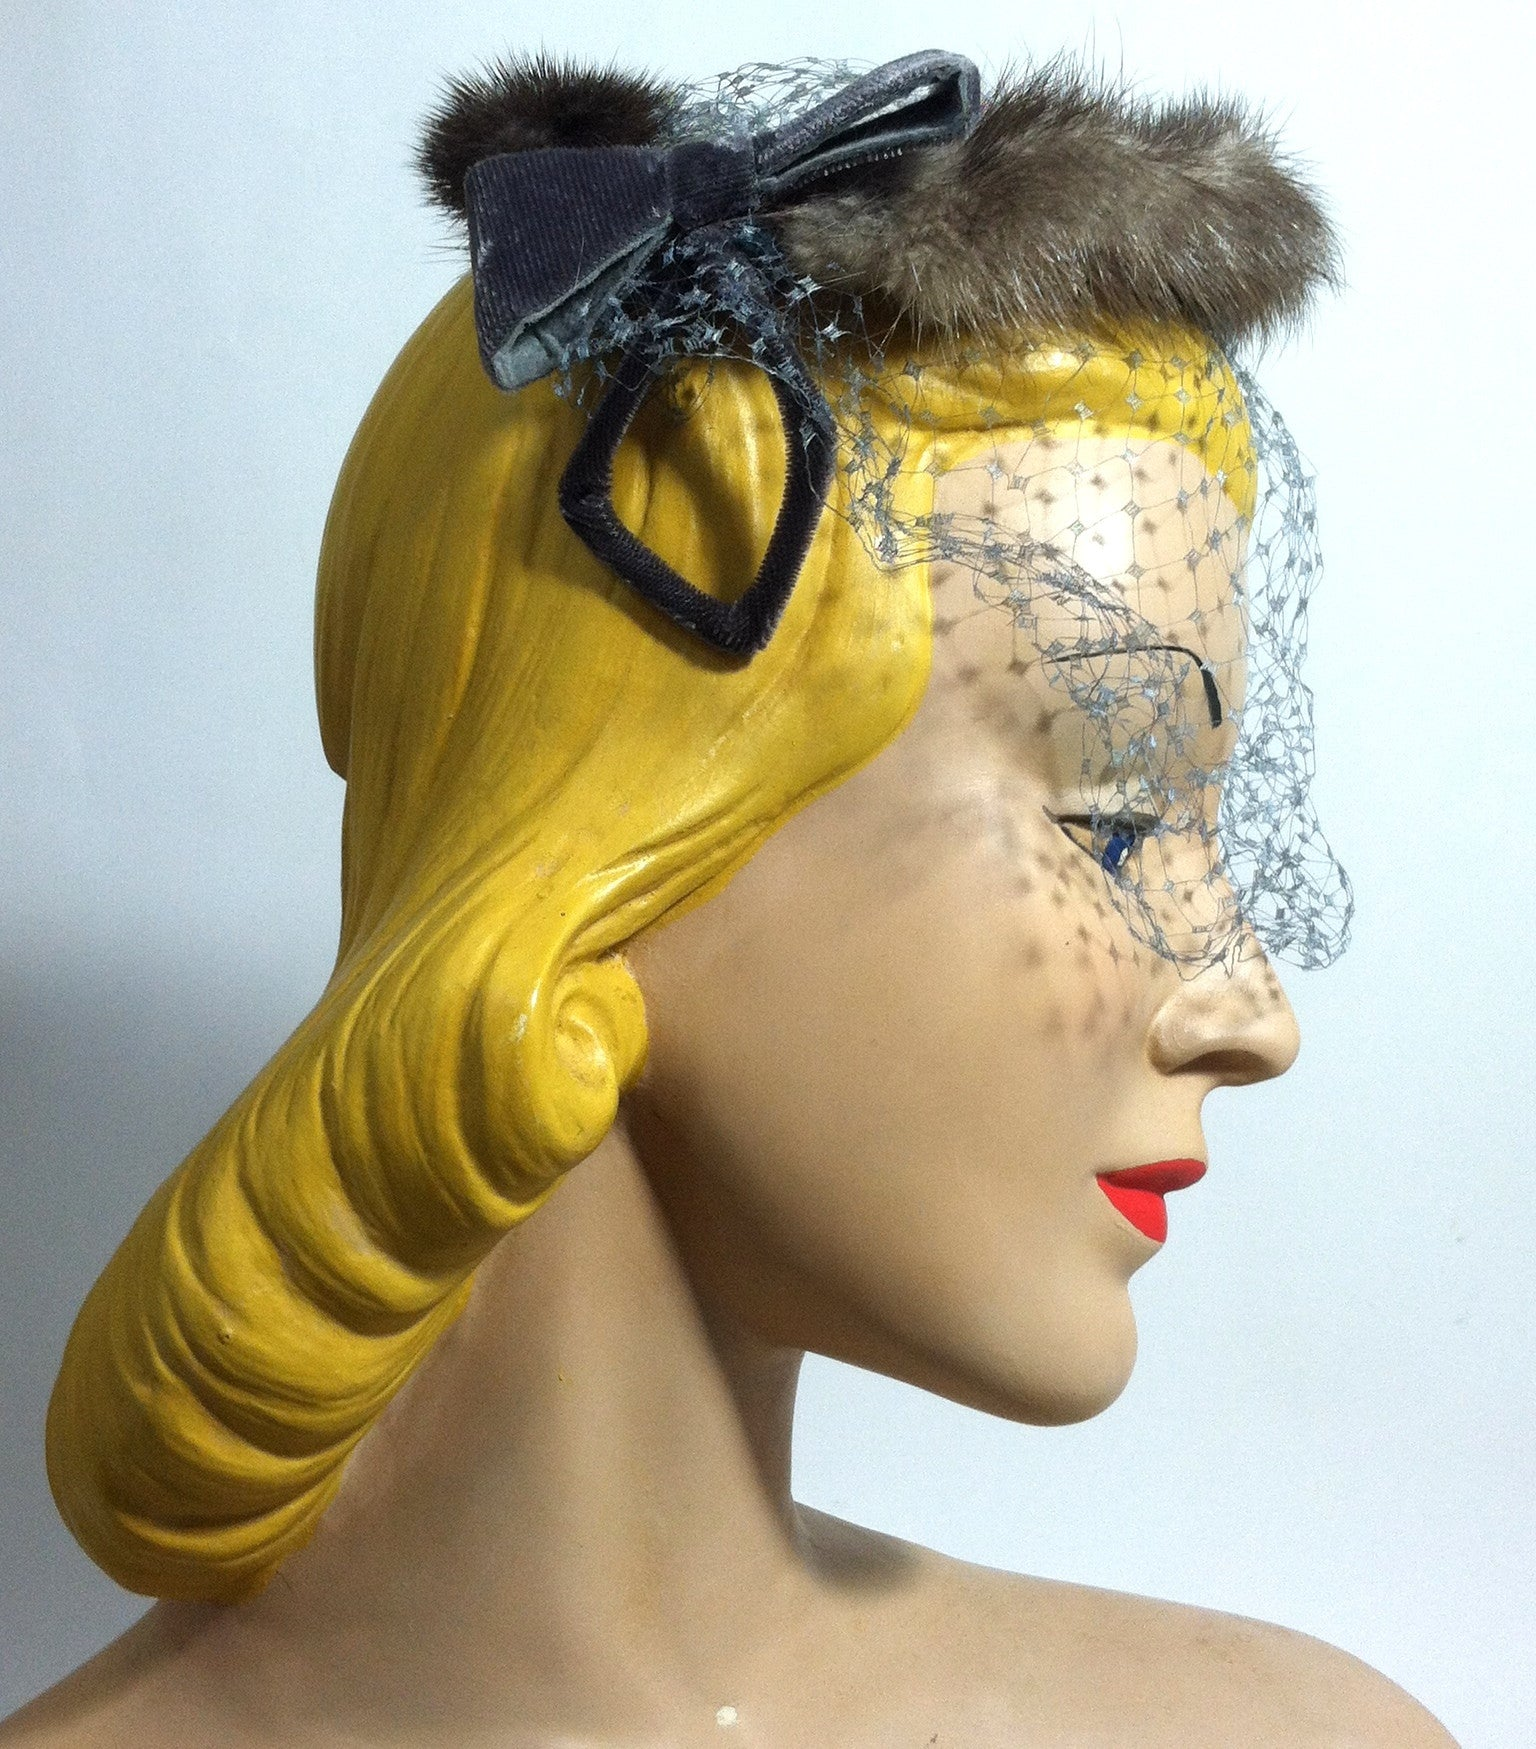 Grey Velvet Bow and Chocolate Mink Cocktail Hat circa 1950s Dorothea's Closet Vintage Hat